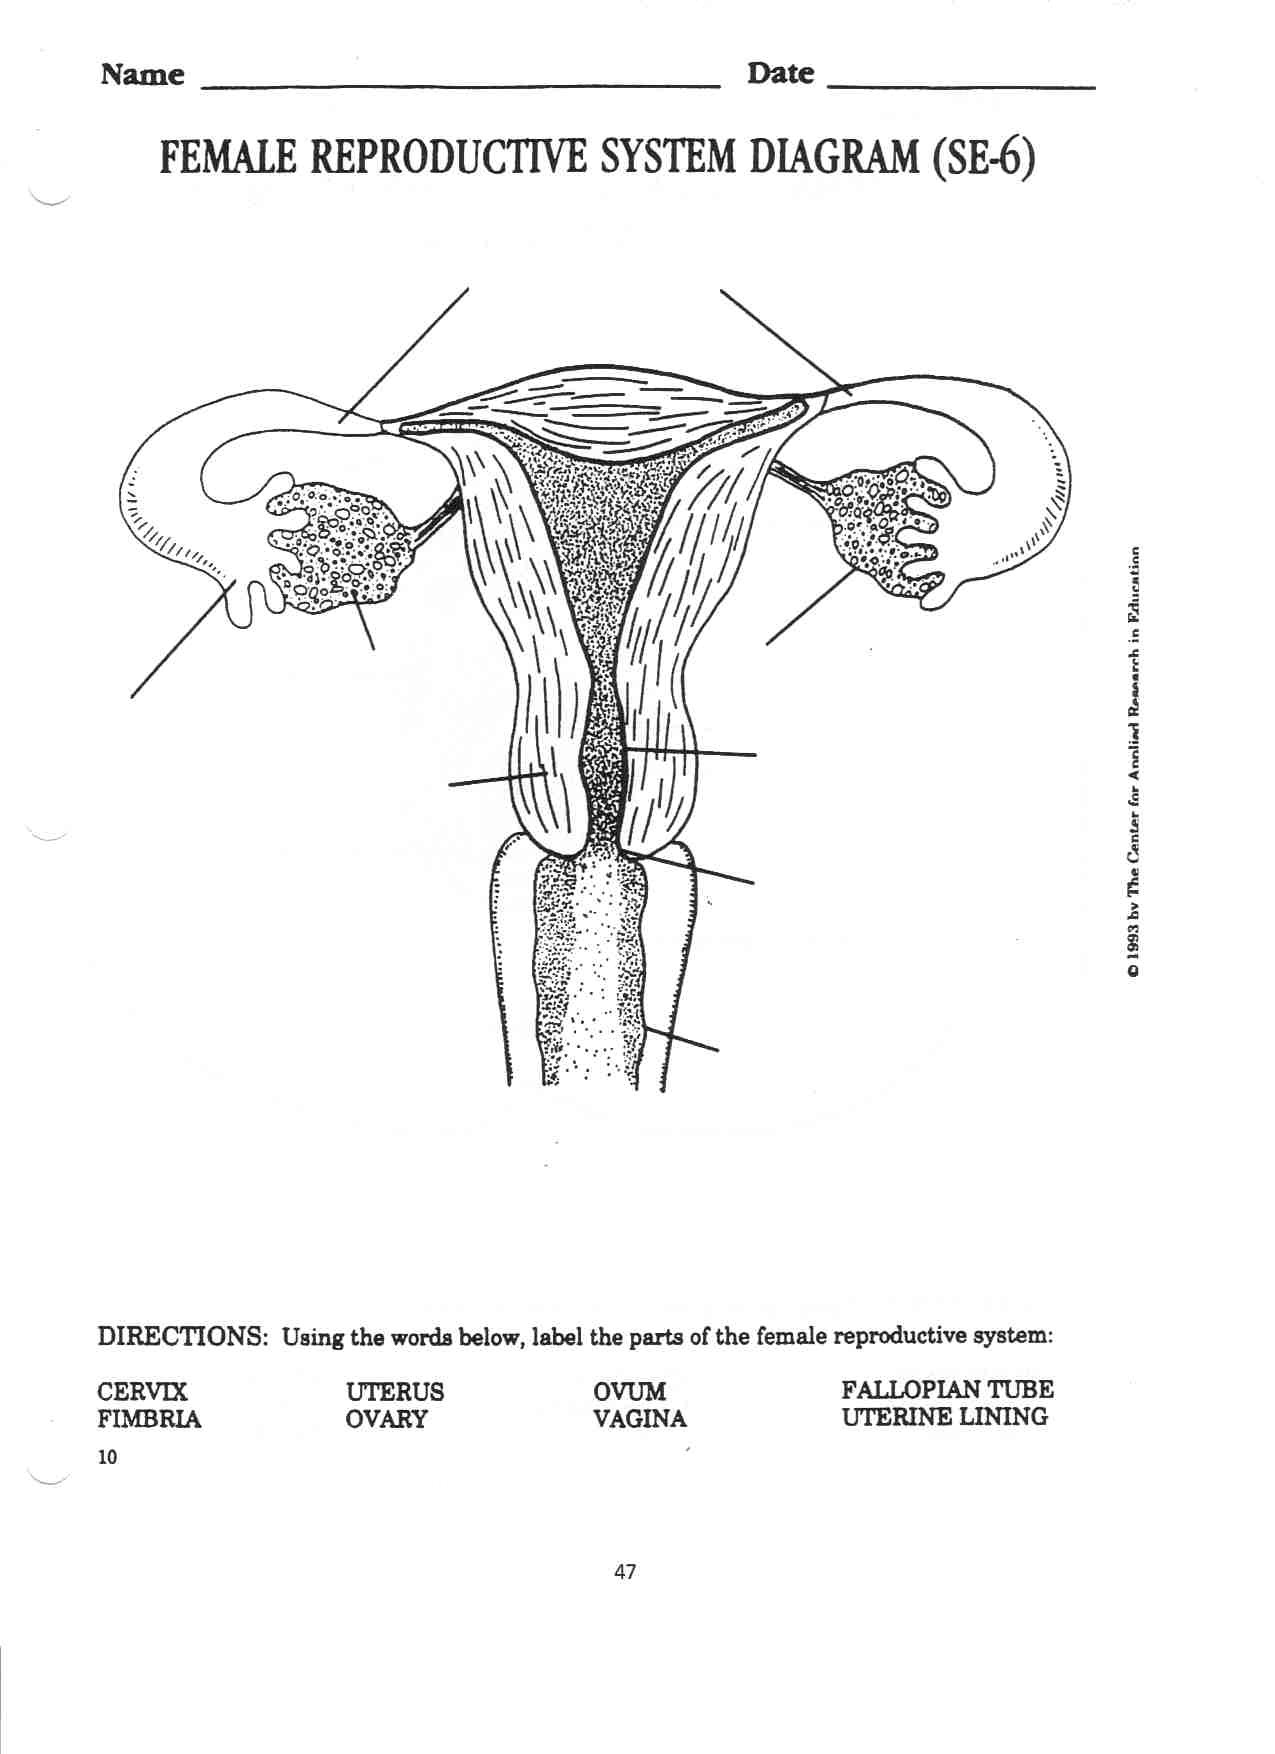 male reproductive system worksheet what are the parts of the male reproductive system human male system reproductive worksheet